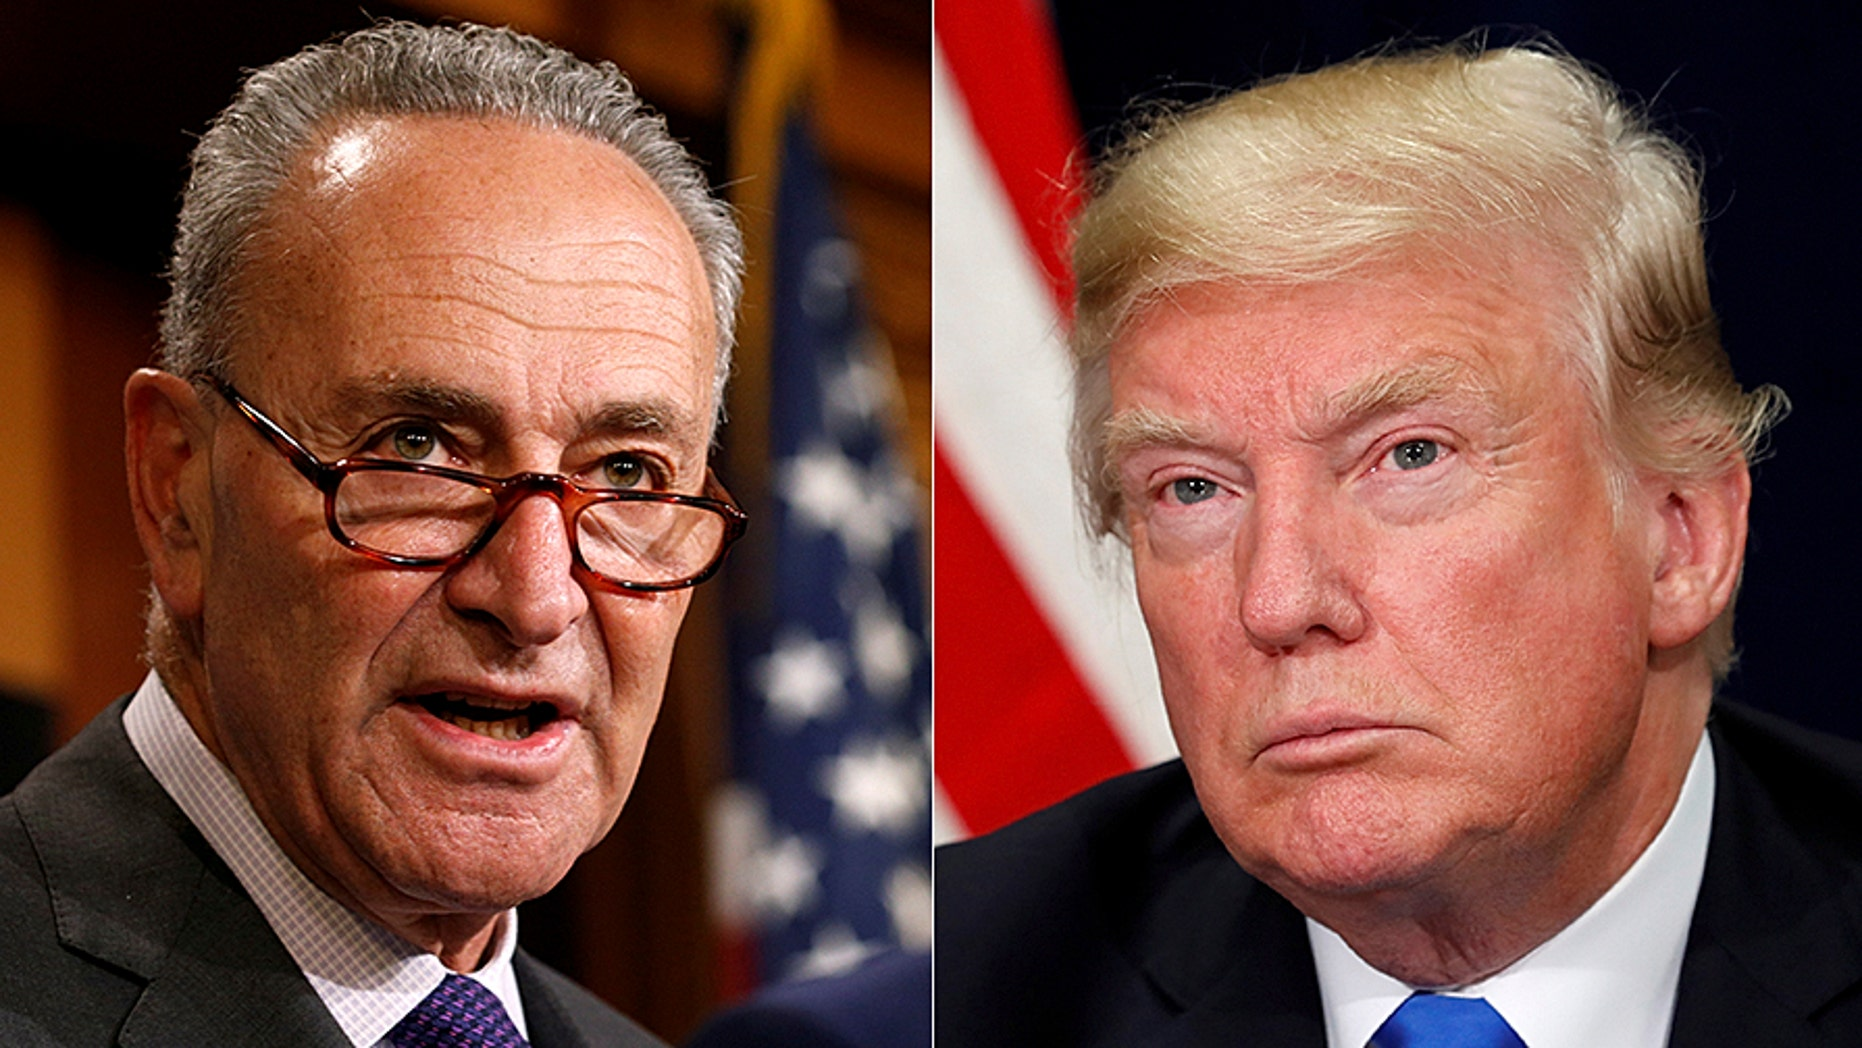 """Senate Minority Leader Chuck Schumer is hitting President Trump for """"politicizing"""" the terror attack in New York City – though the Democrat did the same thing after last month's grisly Las Vegas massacre when he called for new gun control measures."""